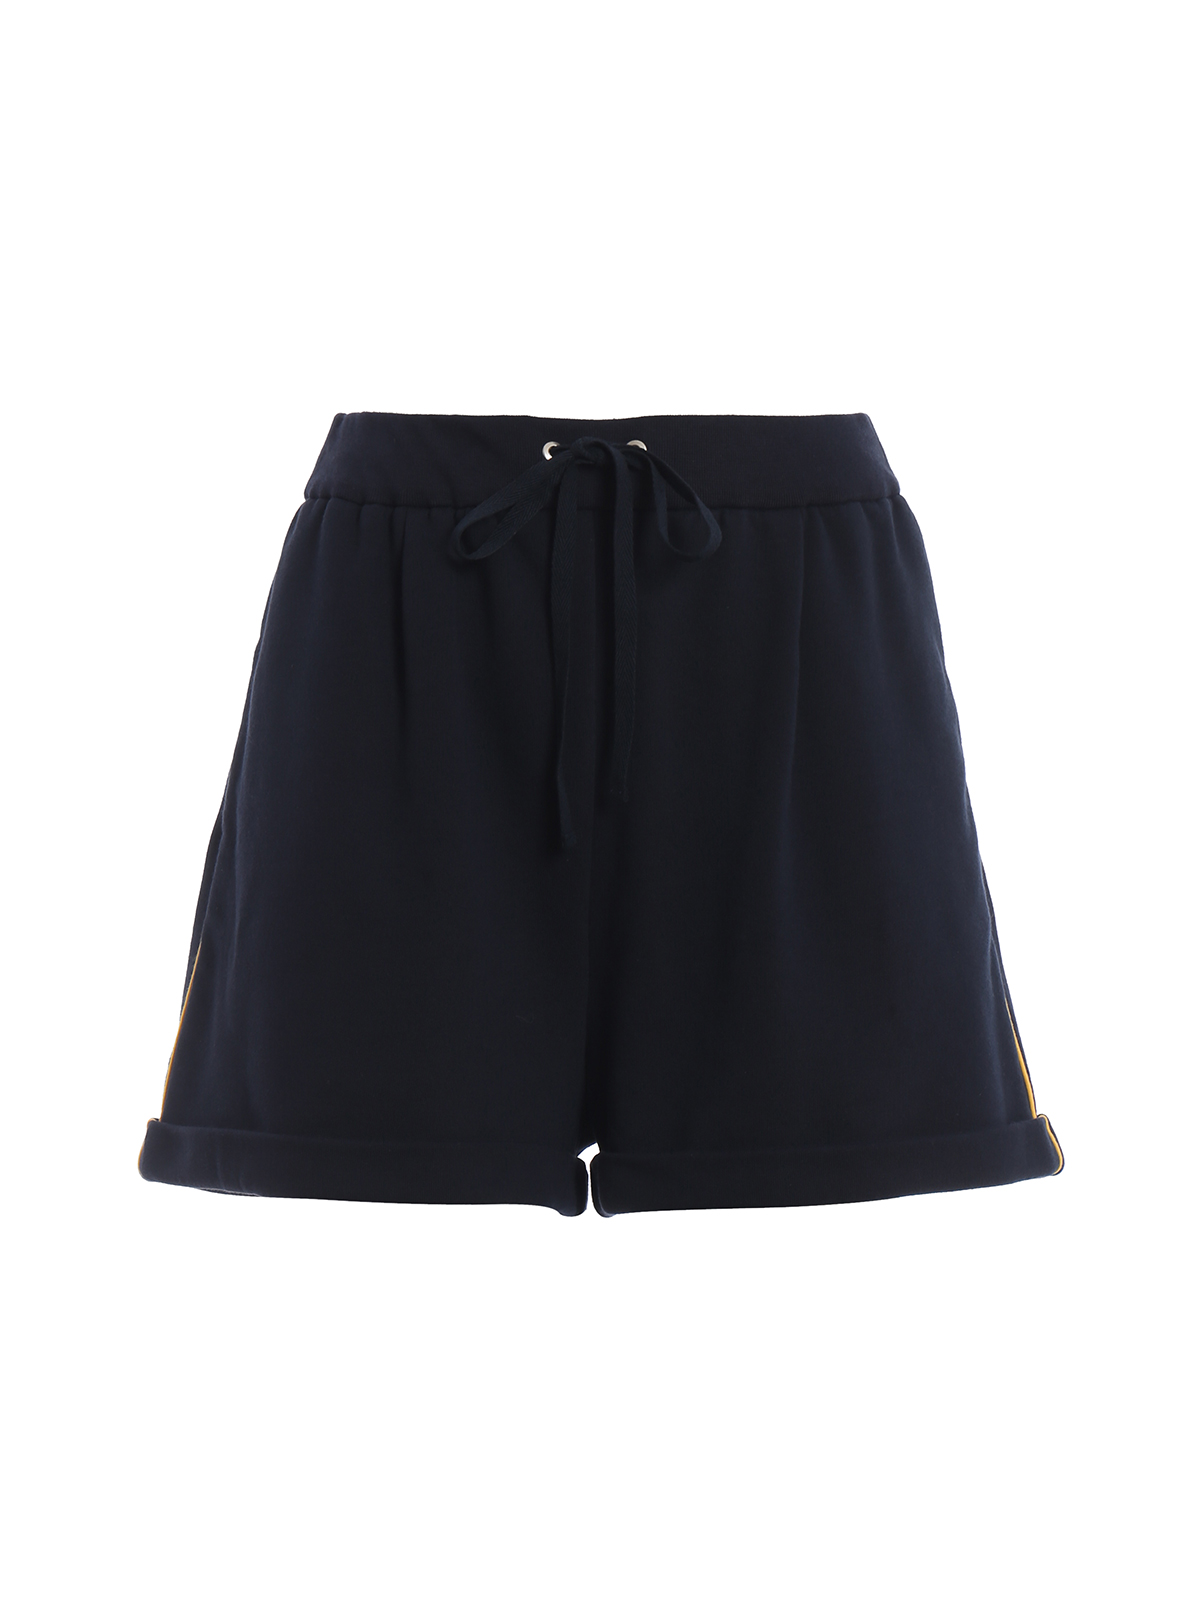 Cotton fleece navy blue short pants J03271676290